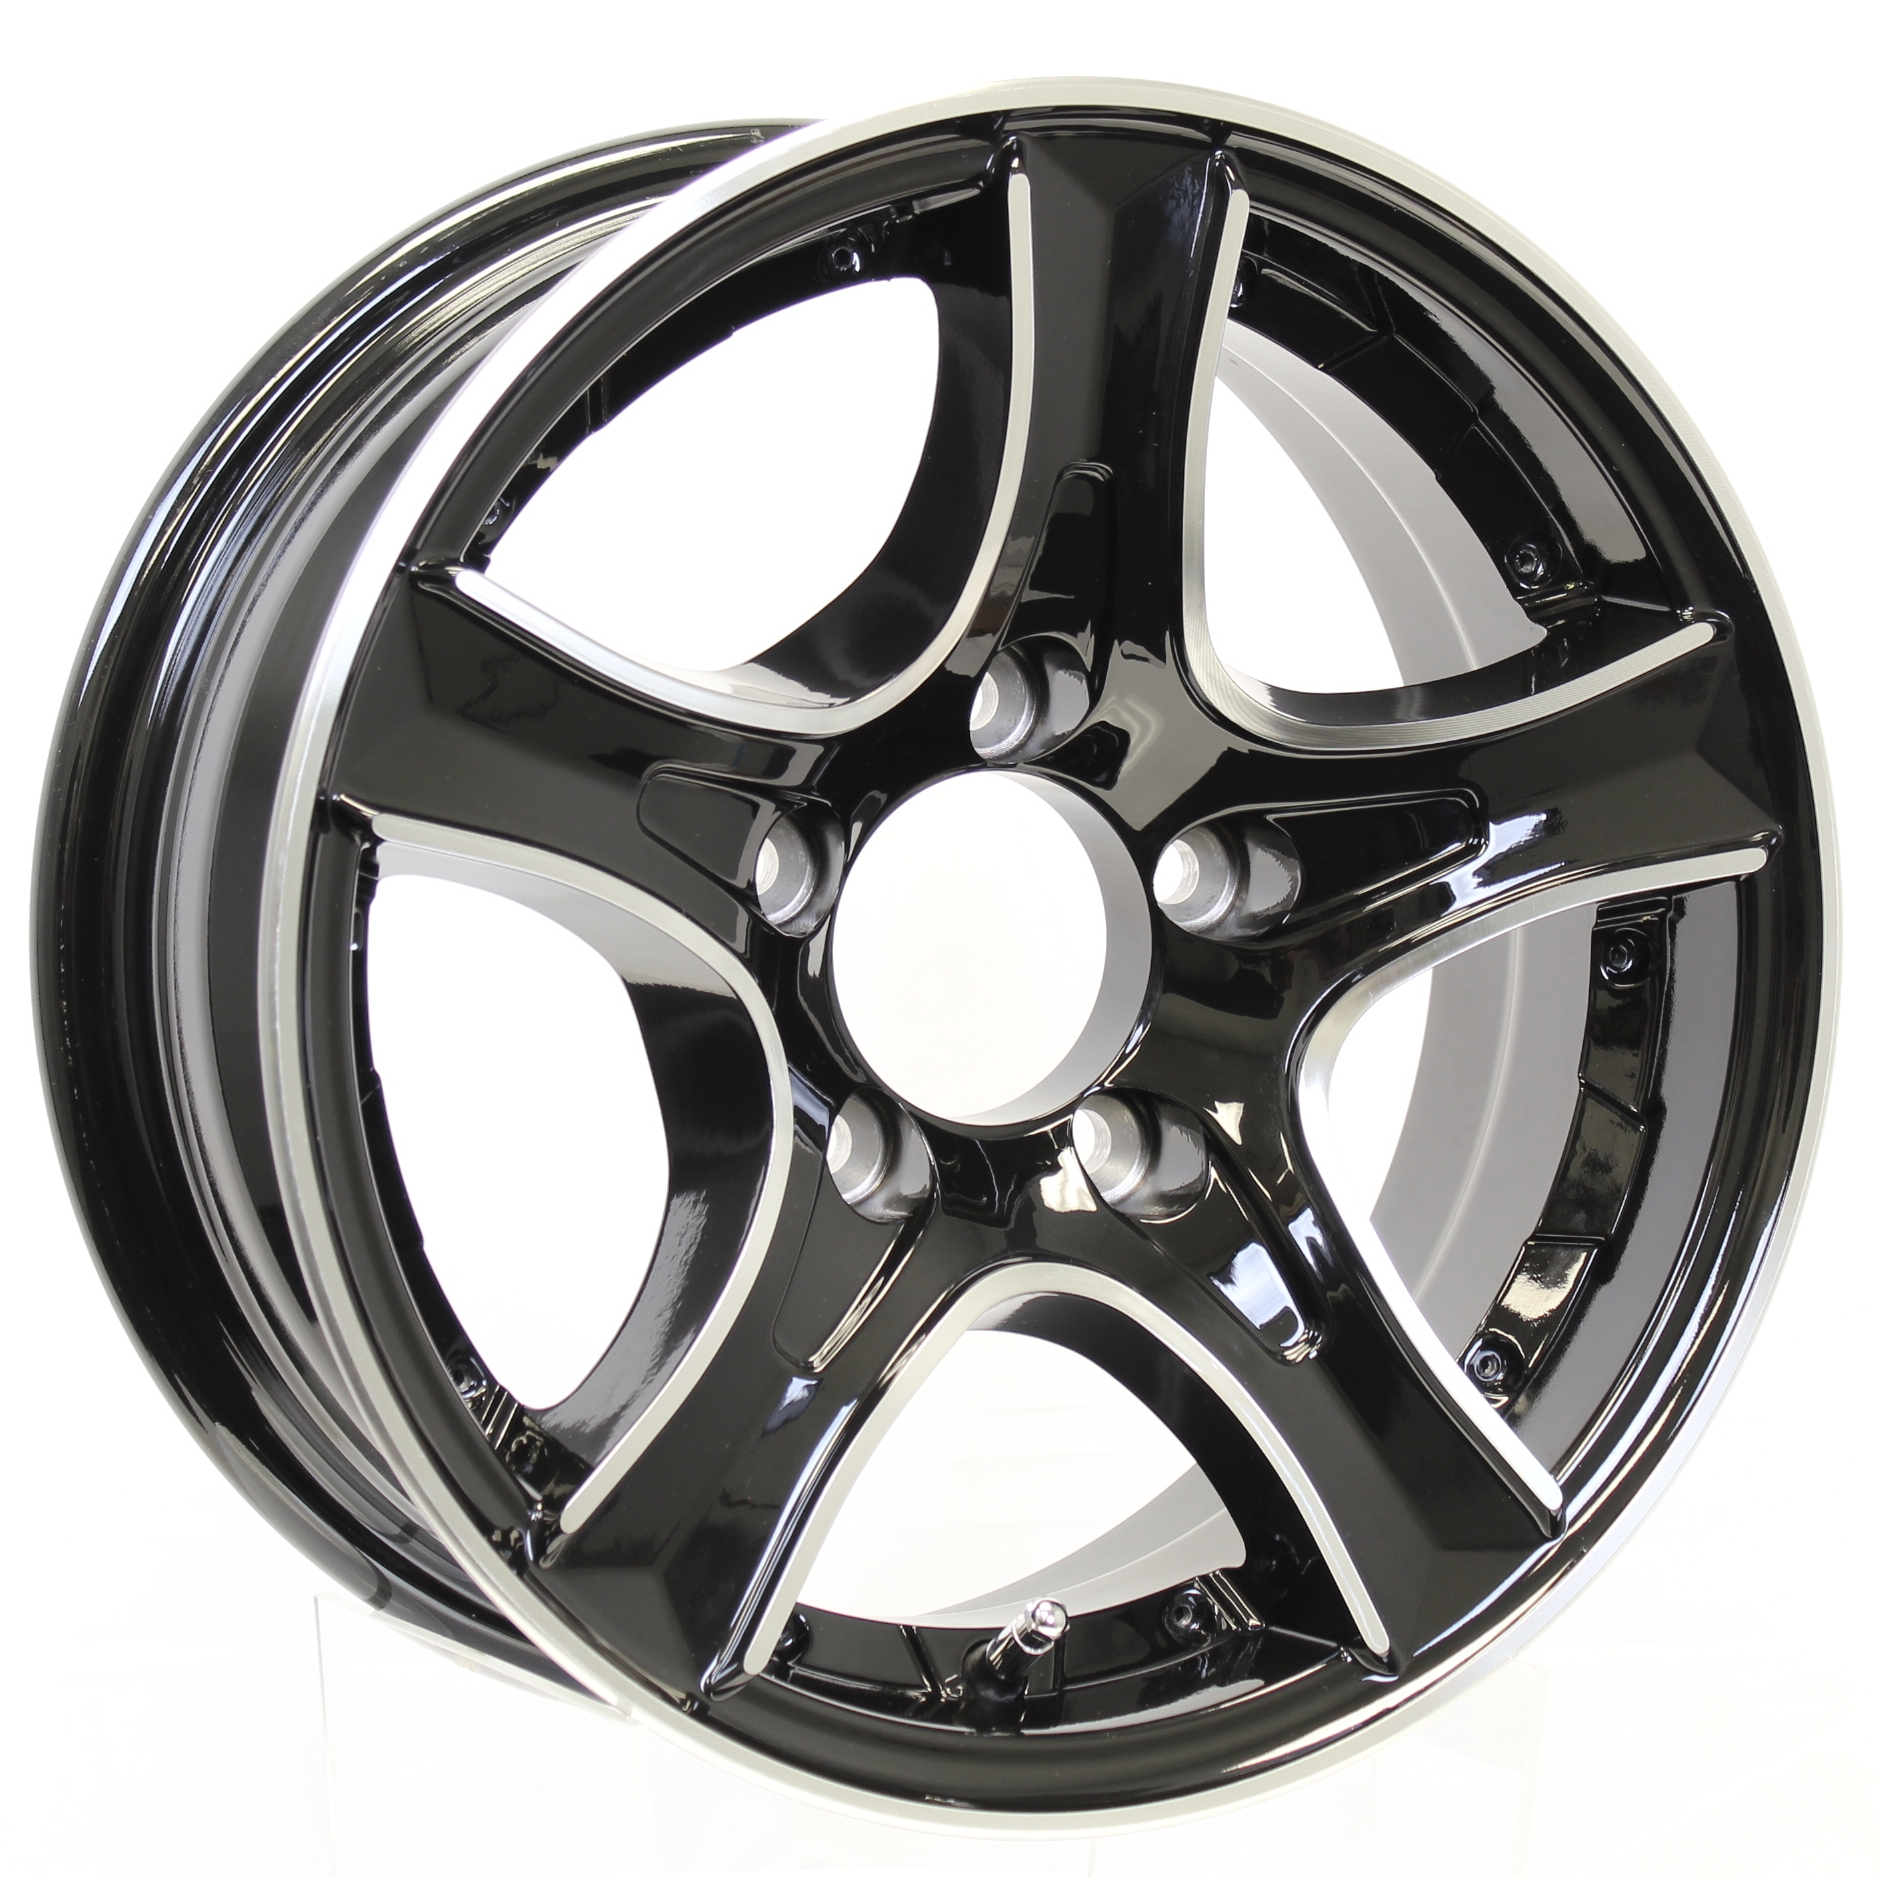 Thoroughbred 14x5.5 5-Lug Black Aluminum Trailer Wheel with Chrome Inserts Image